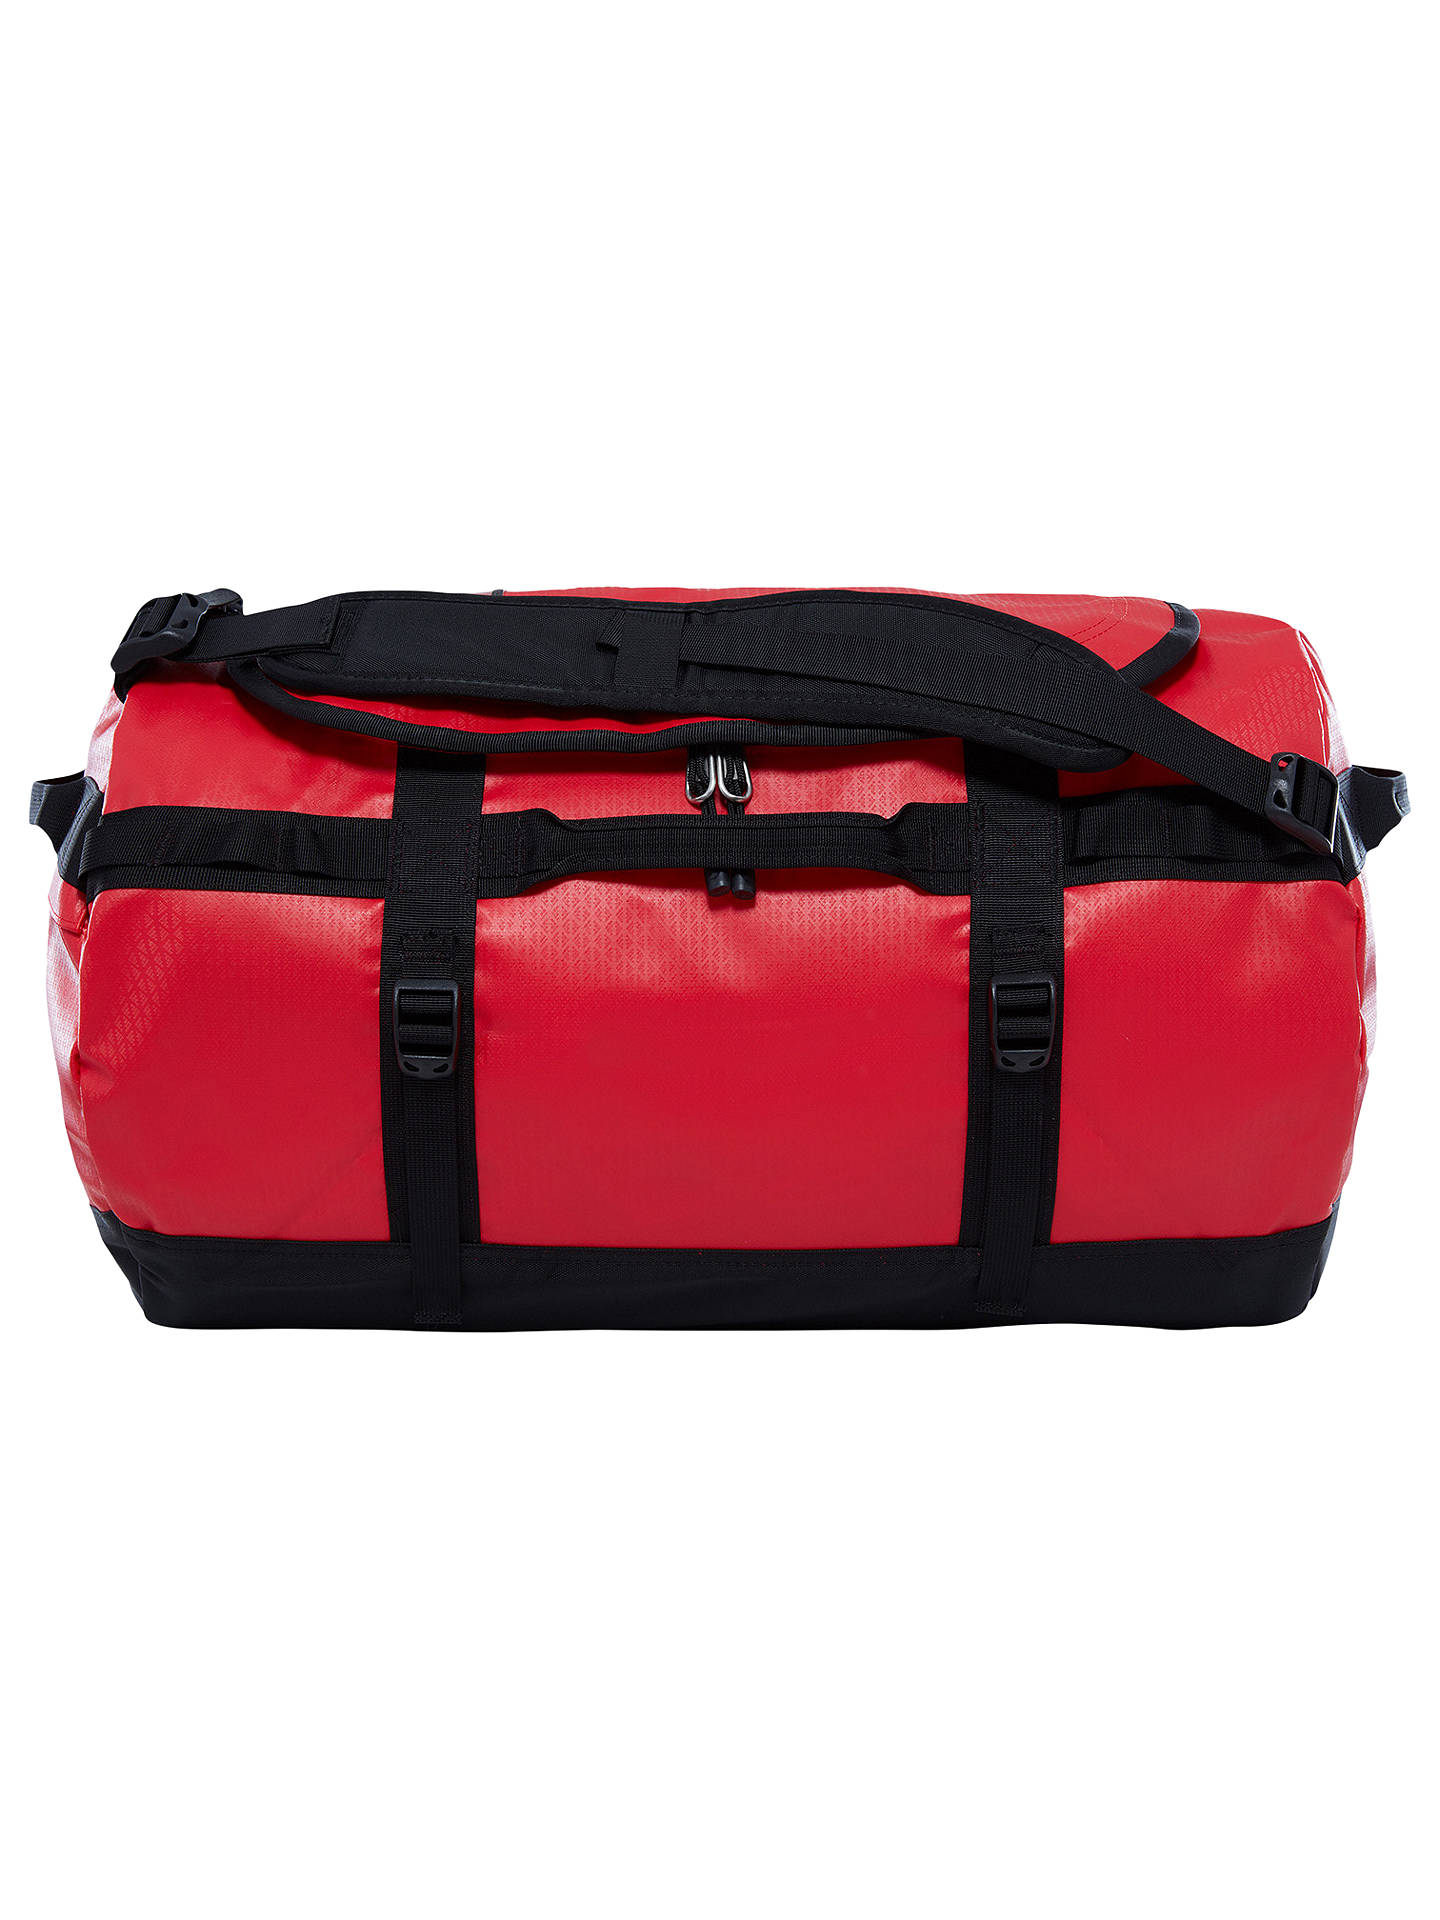 BuyThe North Face Base Camp Duffle Bag, Small, Red Online at johnlewis.com  ... d798fc1f05